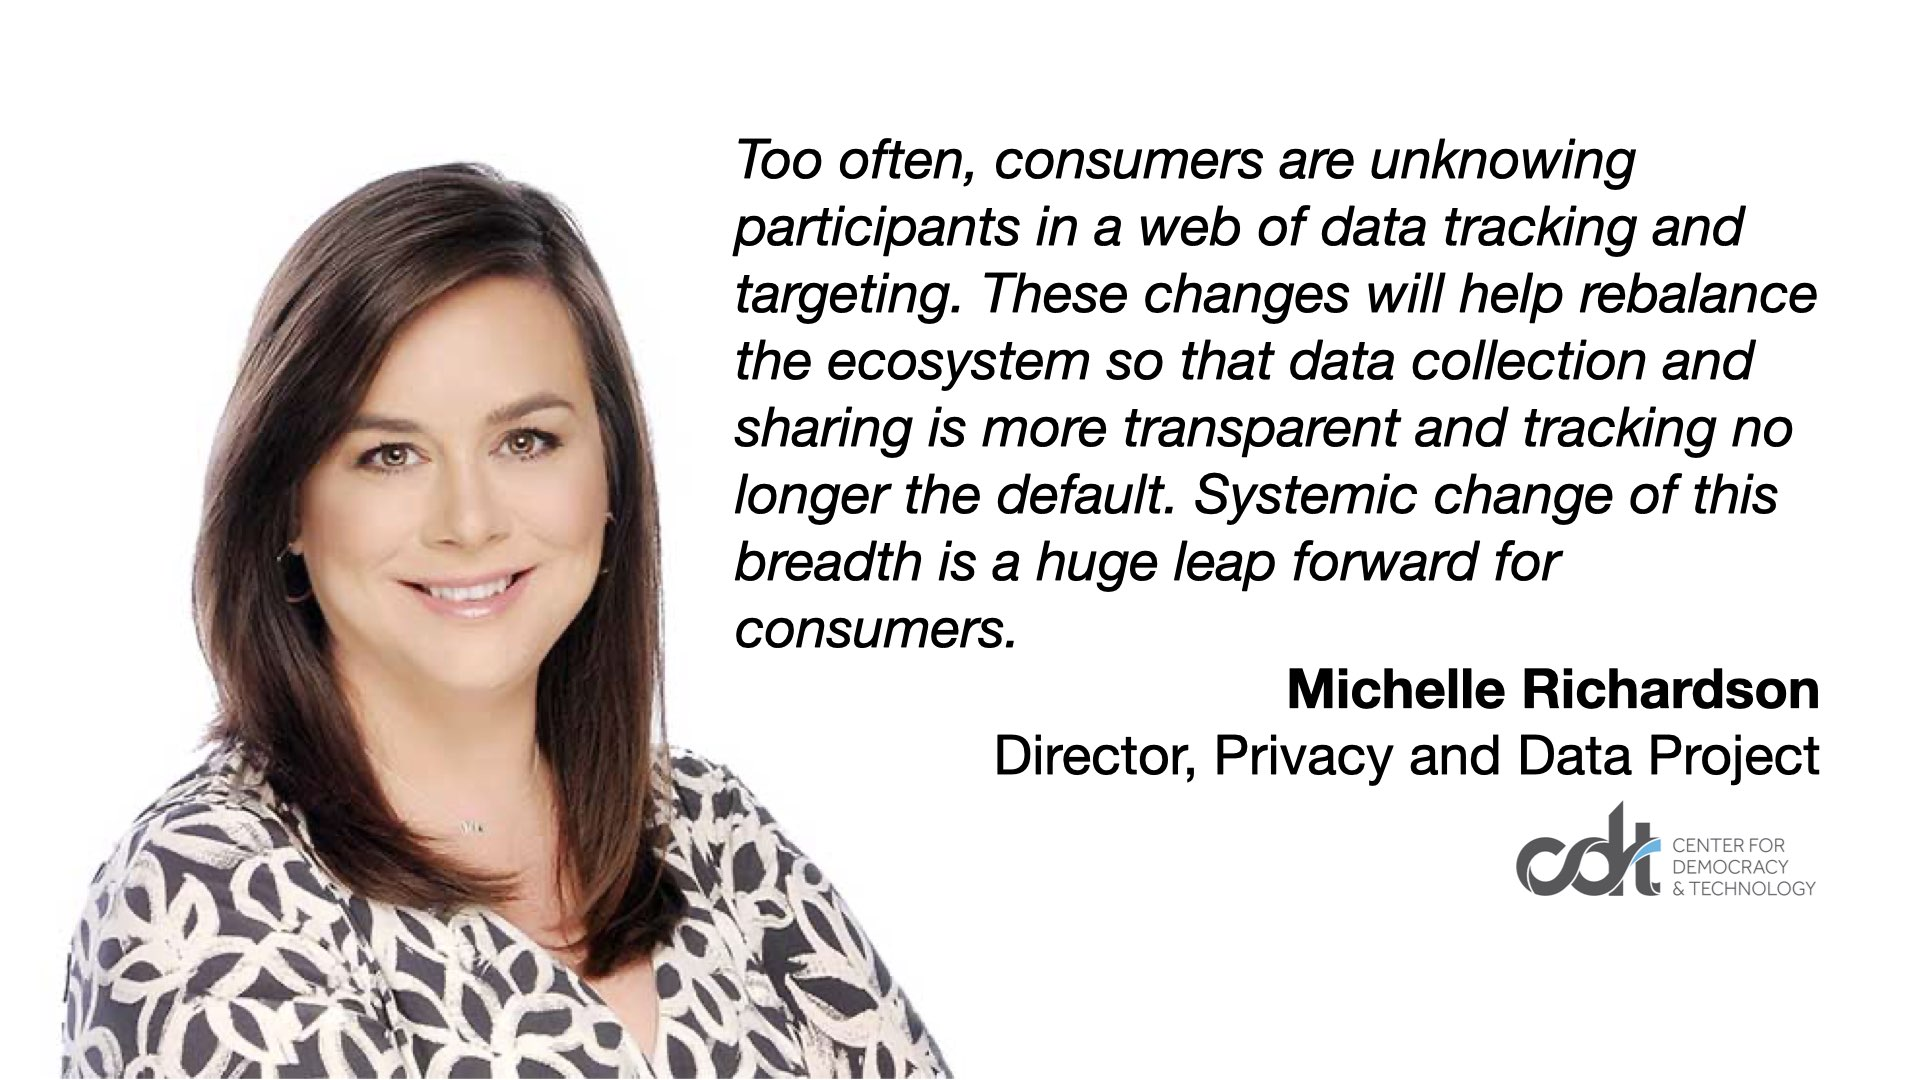 "Too often, consumers are unknowing participants in a web of data tracking and targeting. These changes will help rebalance the ecosystem so that data collection and sharing is more transparent and tracking no longer the default. Systemic change of this breadth is a huge leap forward for consumers."" Michelle Richardson"